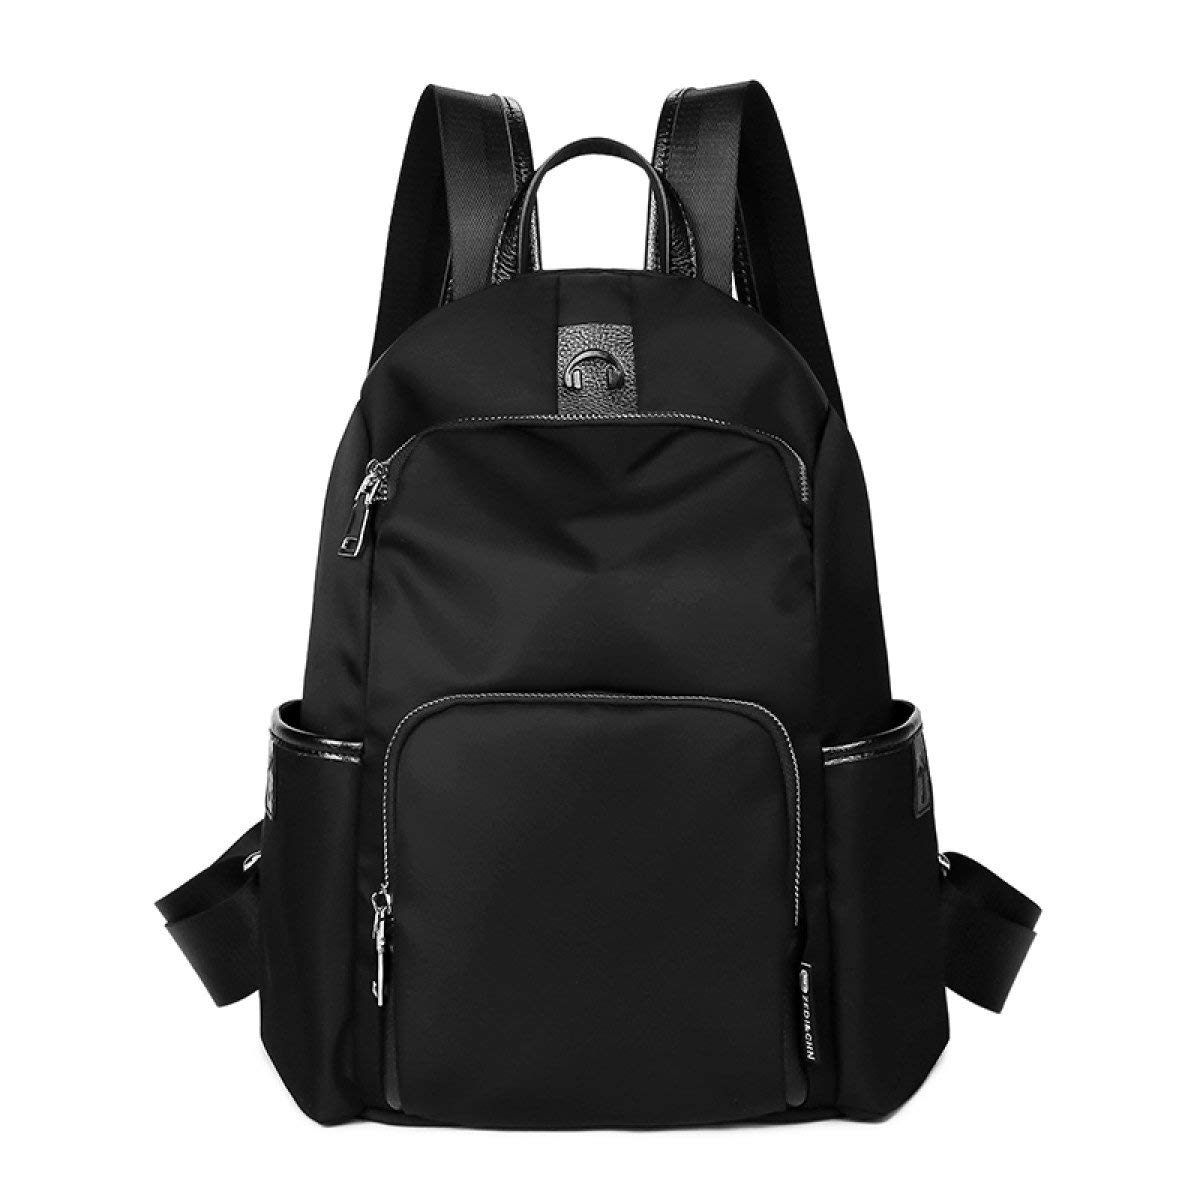 Black One Size Kin Oxford Cloth Shoulder Bag Woman Casual Nylon Canvas Backpack Casual Backpack